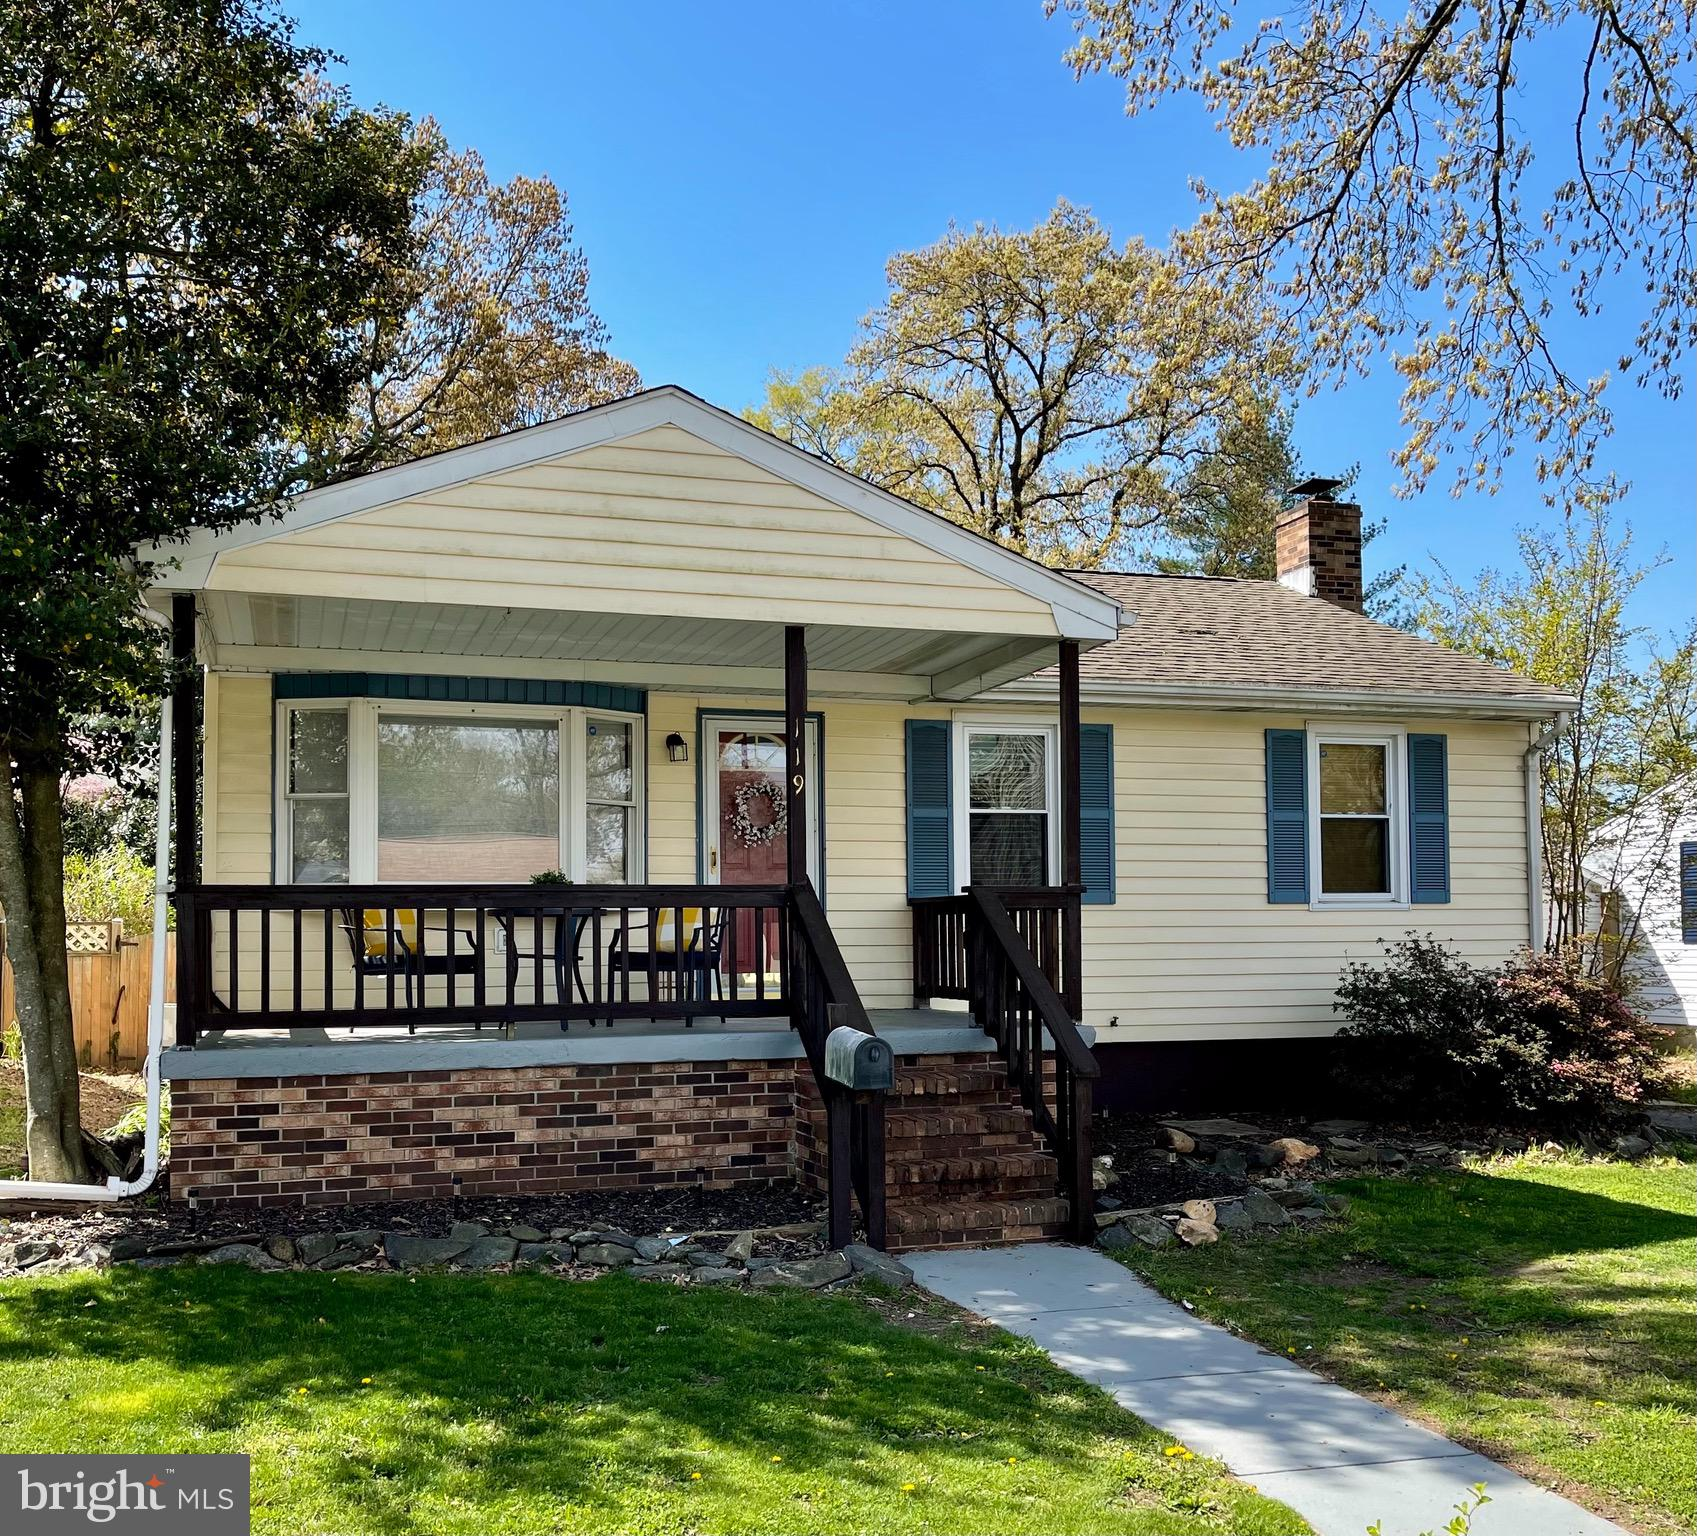 119 W 1ST AVENUE W, GLEN BURNIE, Maryland 21061, 3 Bedrooms Bedrooms, ,1 BathroomBathrooms,Single Family,For Sale,119 W 1ST AVENUE W,MDAA465858